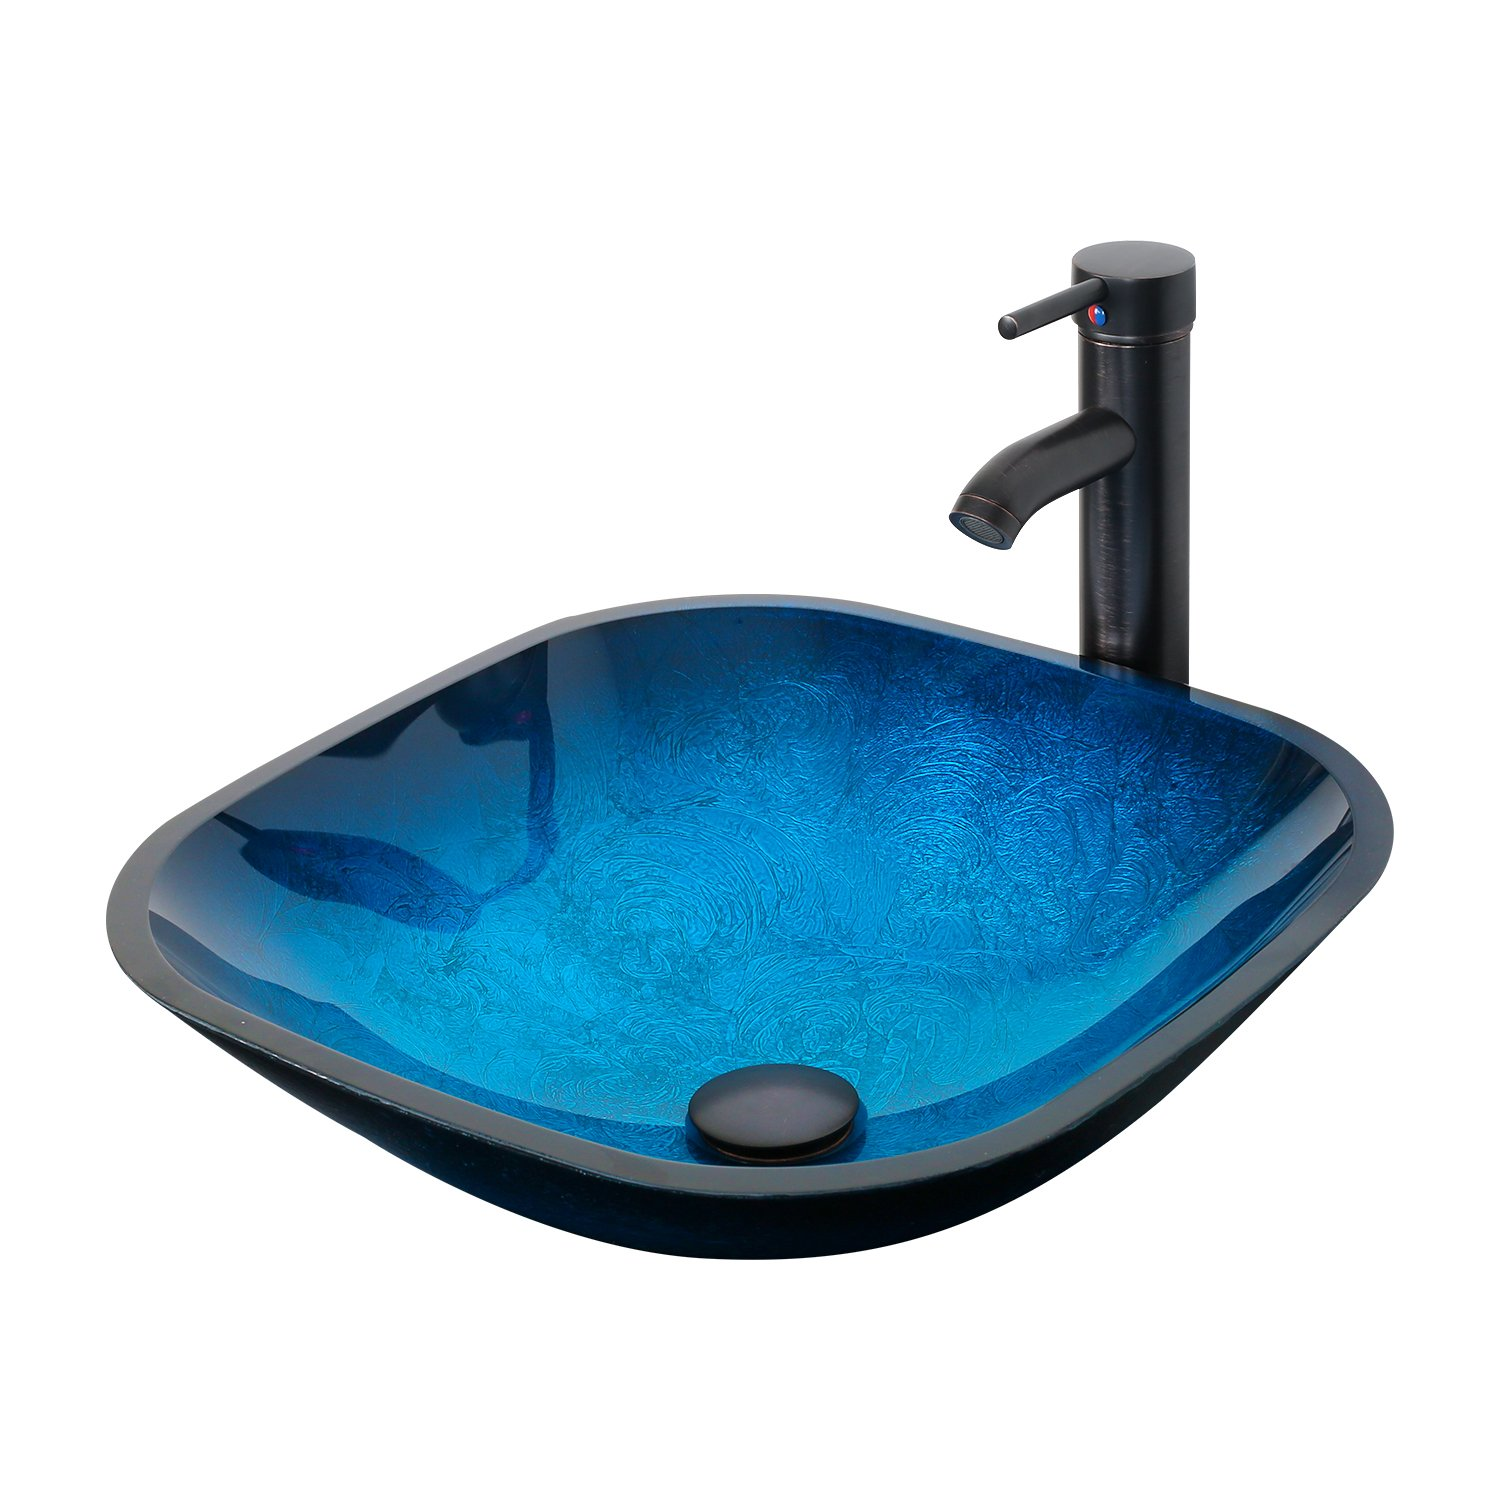 Eclife Ocean Blue Square Bathroom Sink Artistic Tempered Glass ...